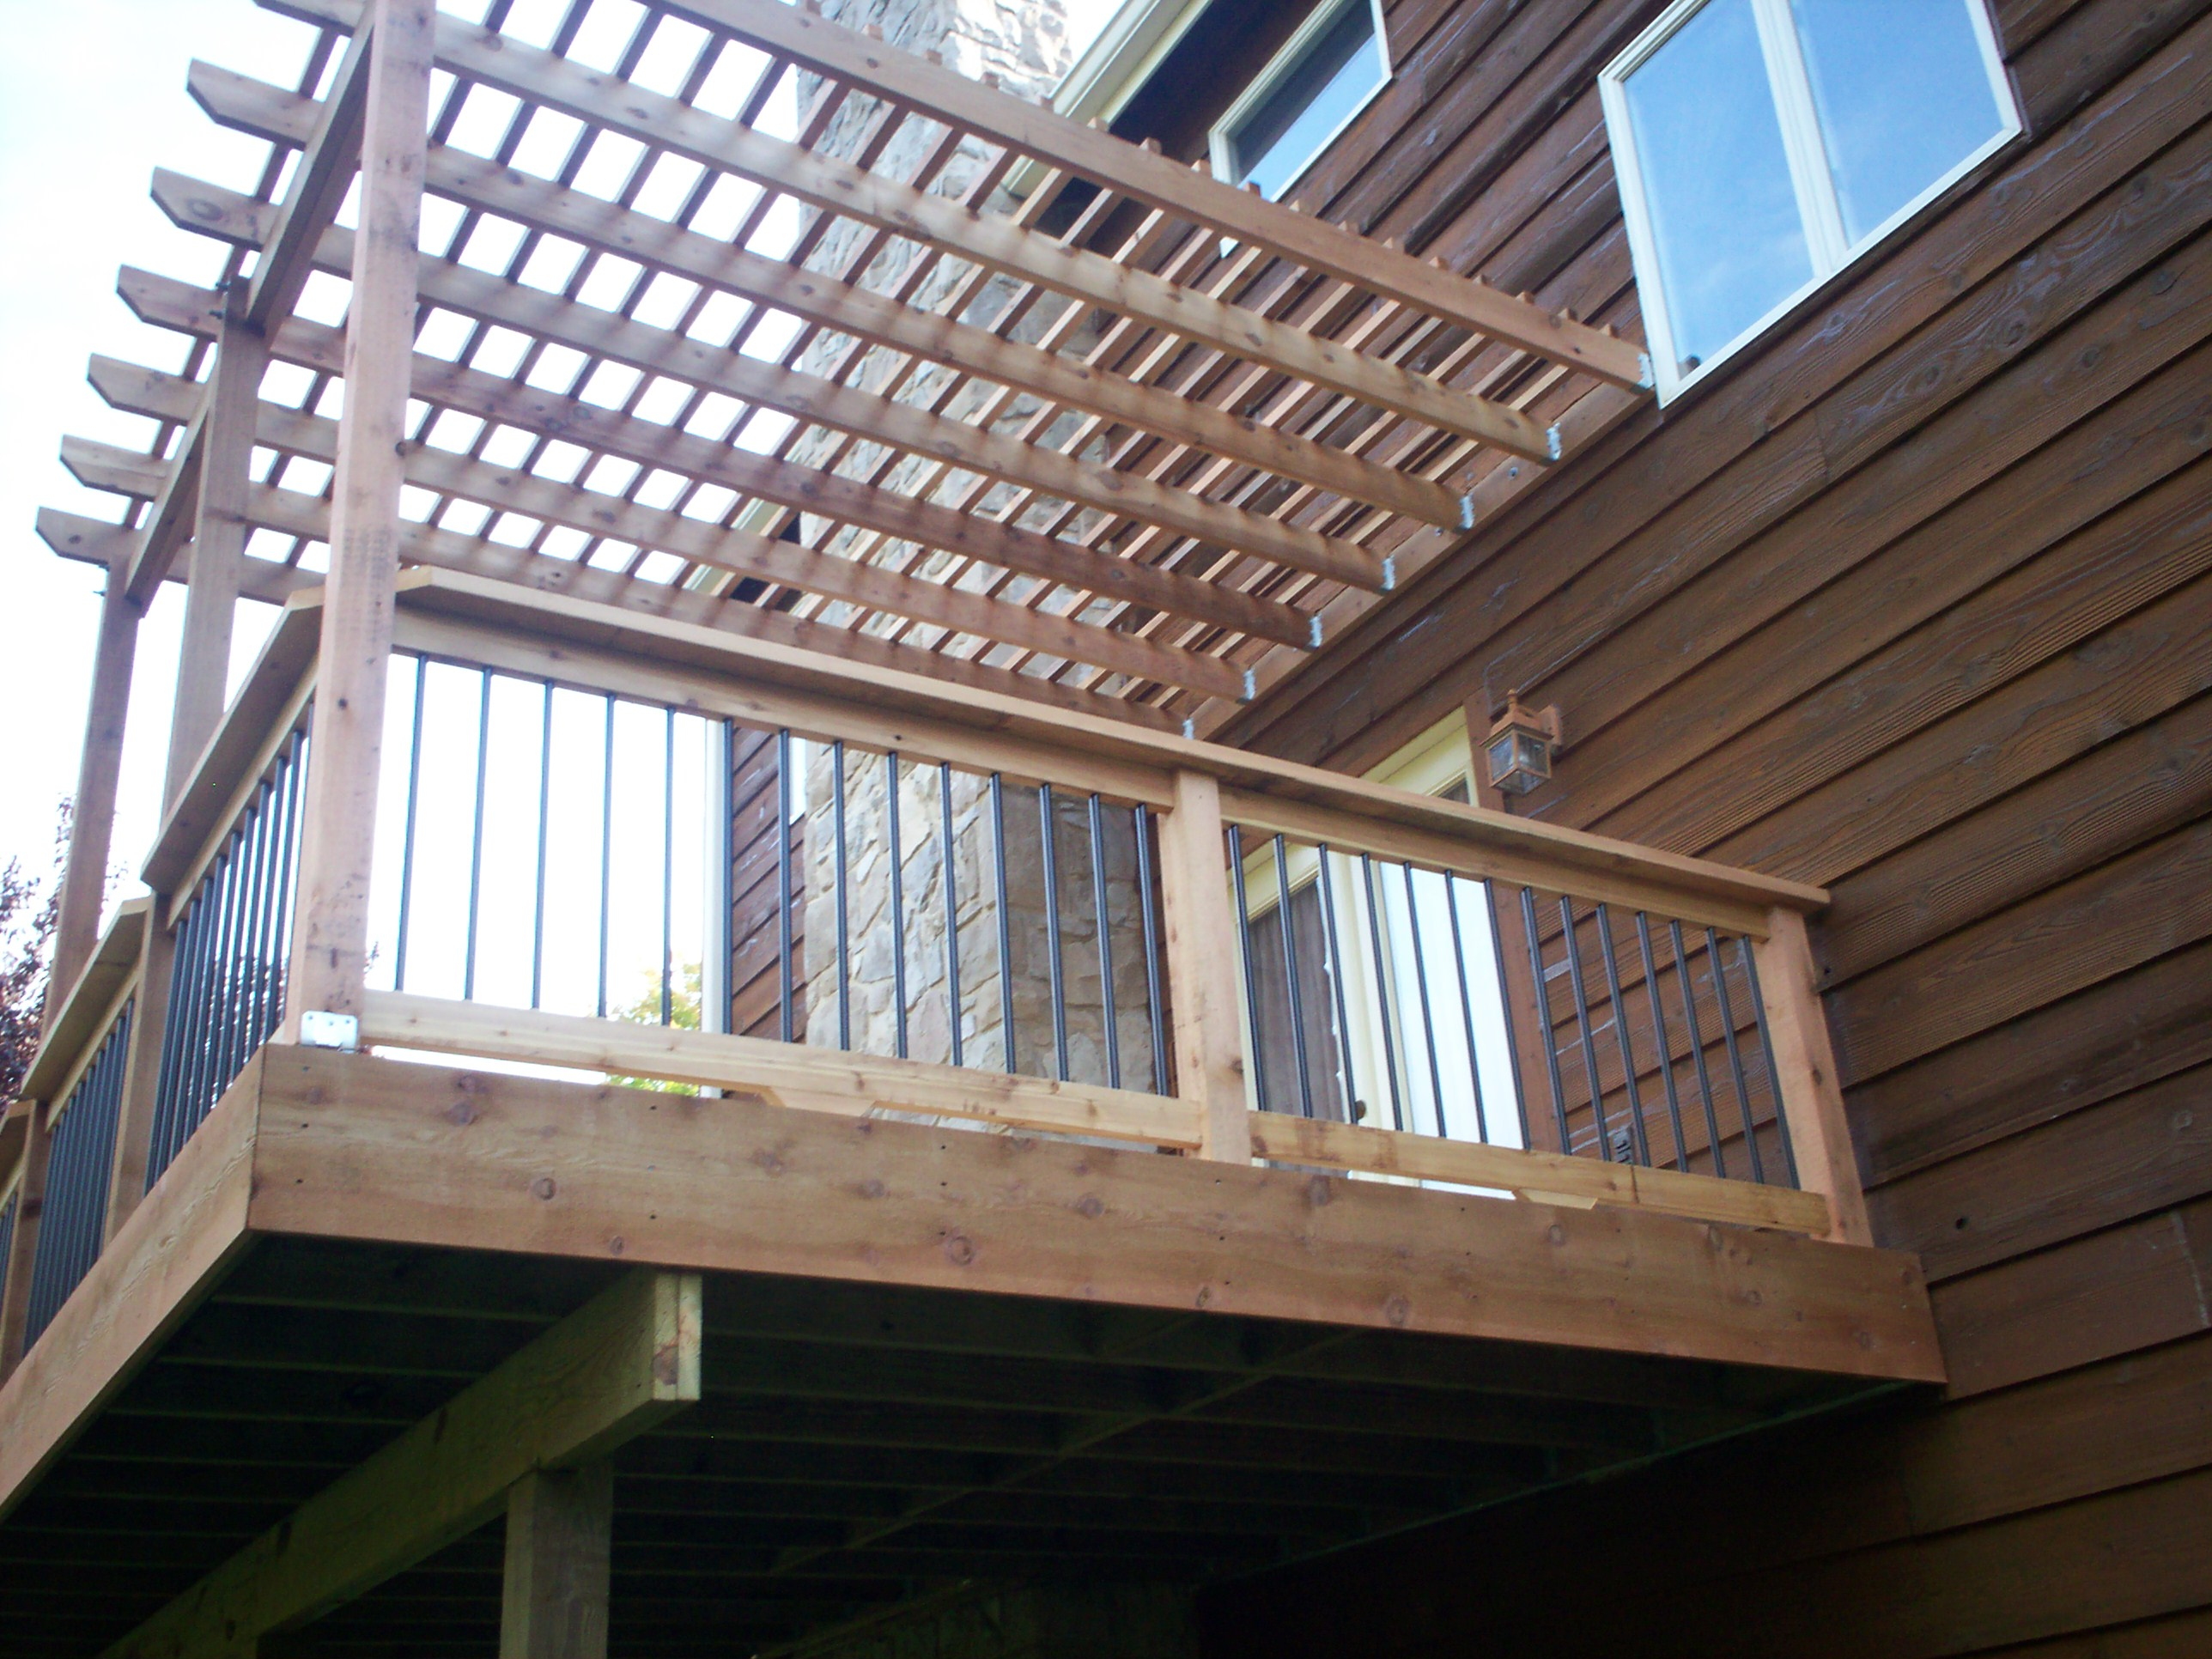 Build Your Own Street Deck Kit Roarockit How To Build A